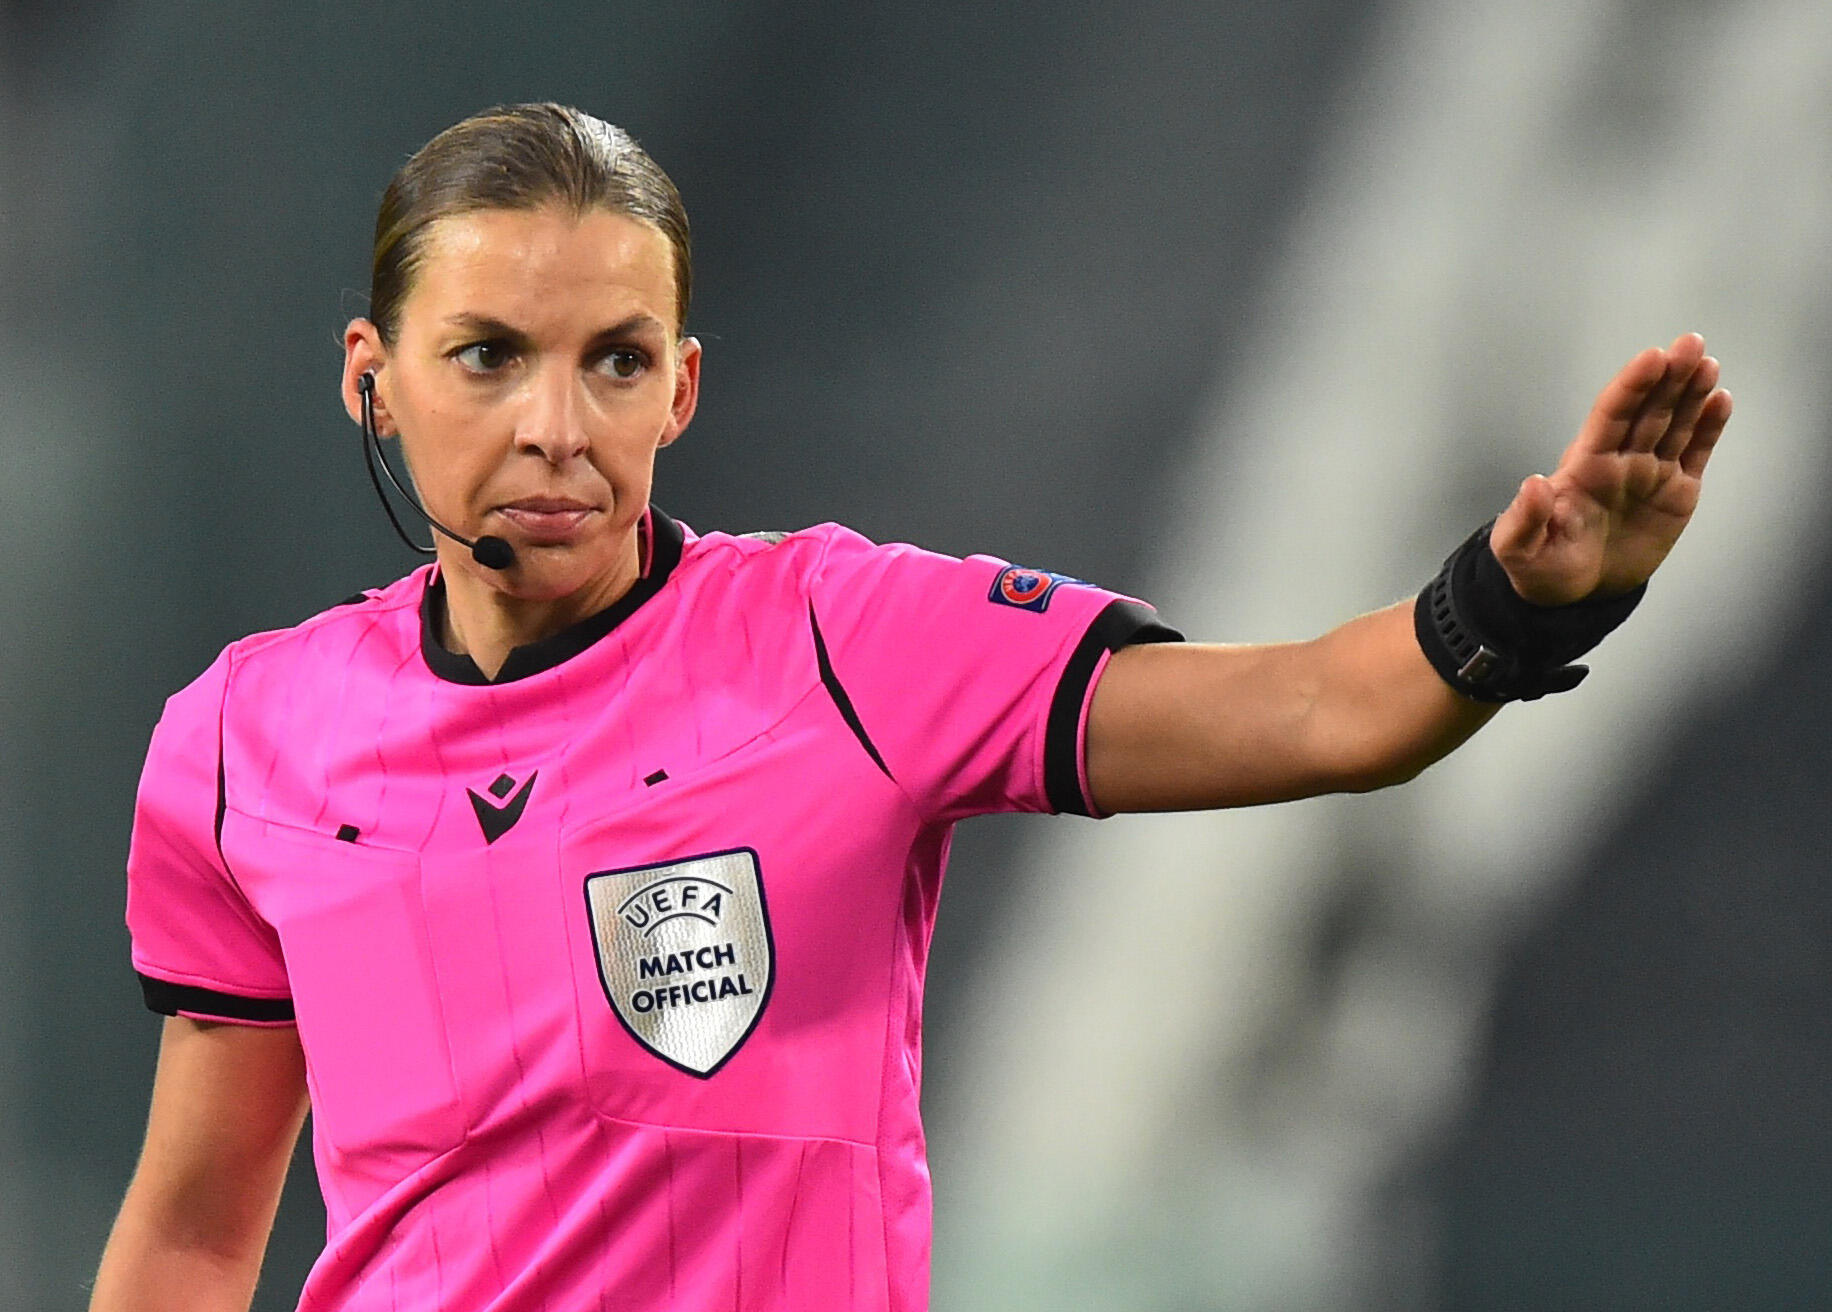 Football referee Stéphanie Frappart at a Champions League match Dec. 2, 2020.